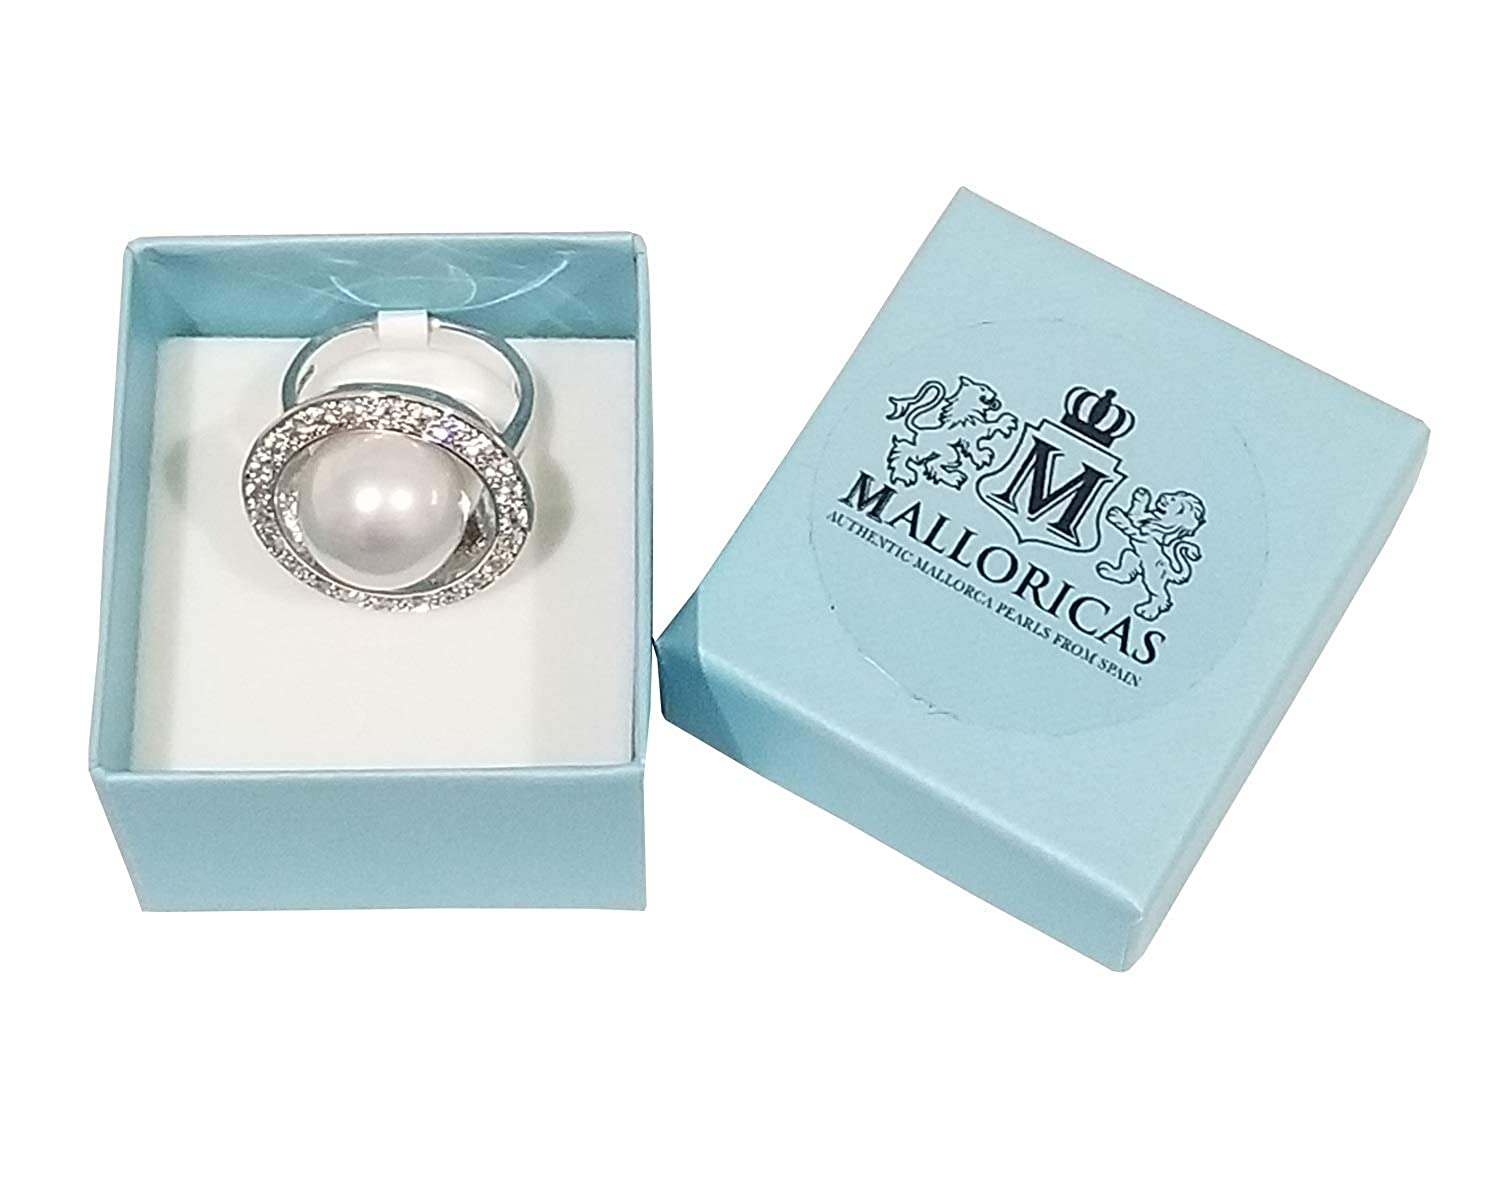 Malloricas Authentic Pearls Every Day Sun Silver Pearl Zirconia Ring